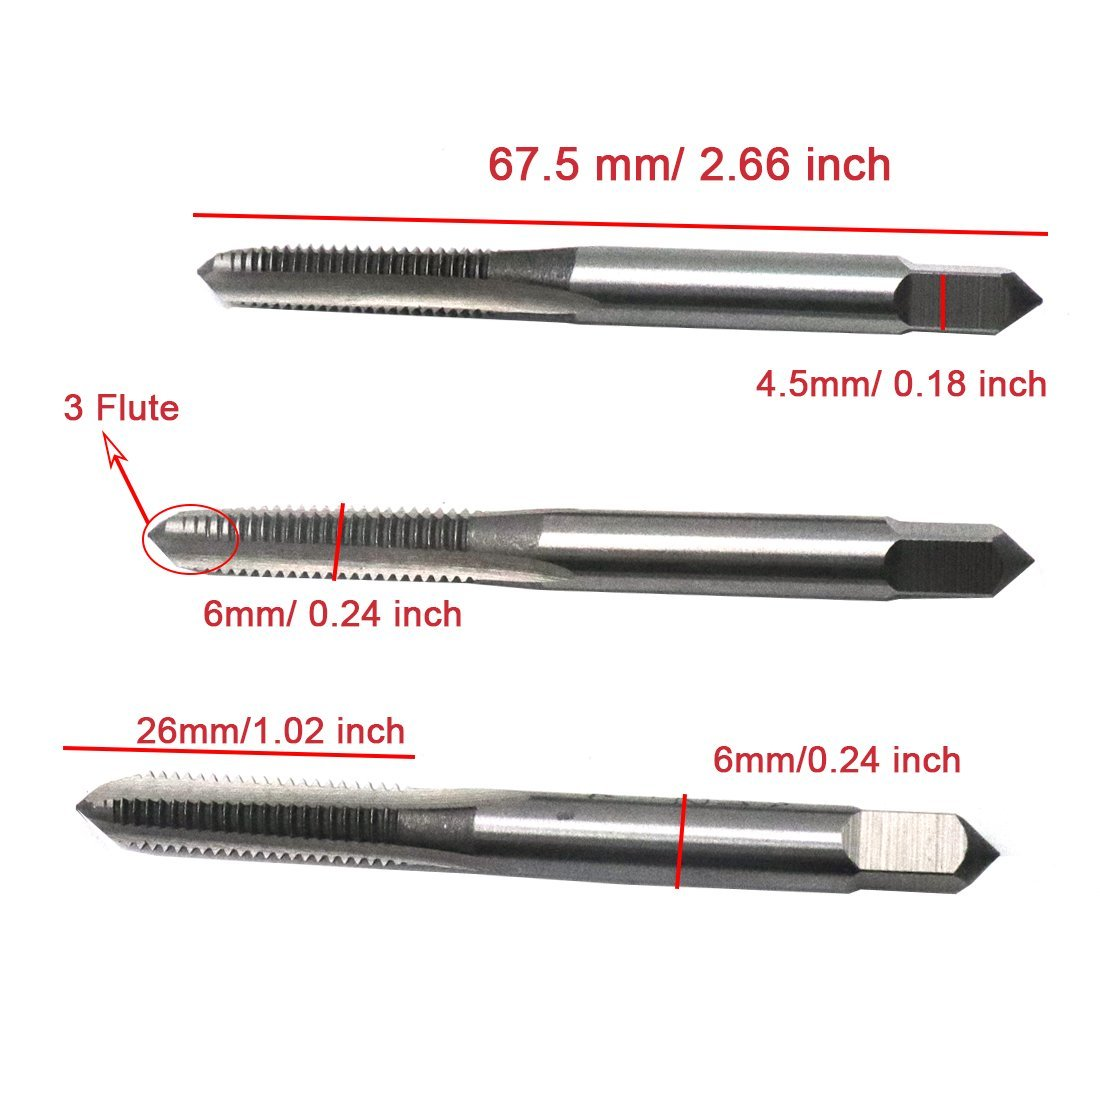 ZXHAO High-Carbon Steel M6x1mm//0.24x0.04 inch Straight 3 Flutes Metric Hand Taps 1set